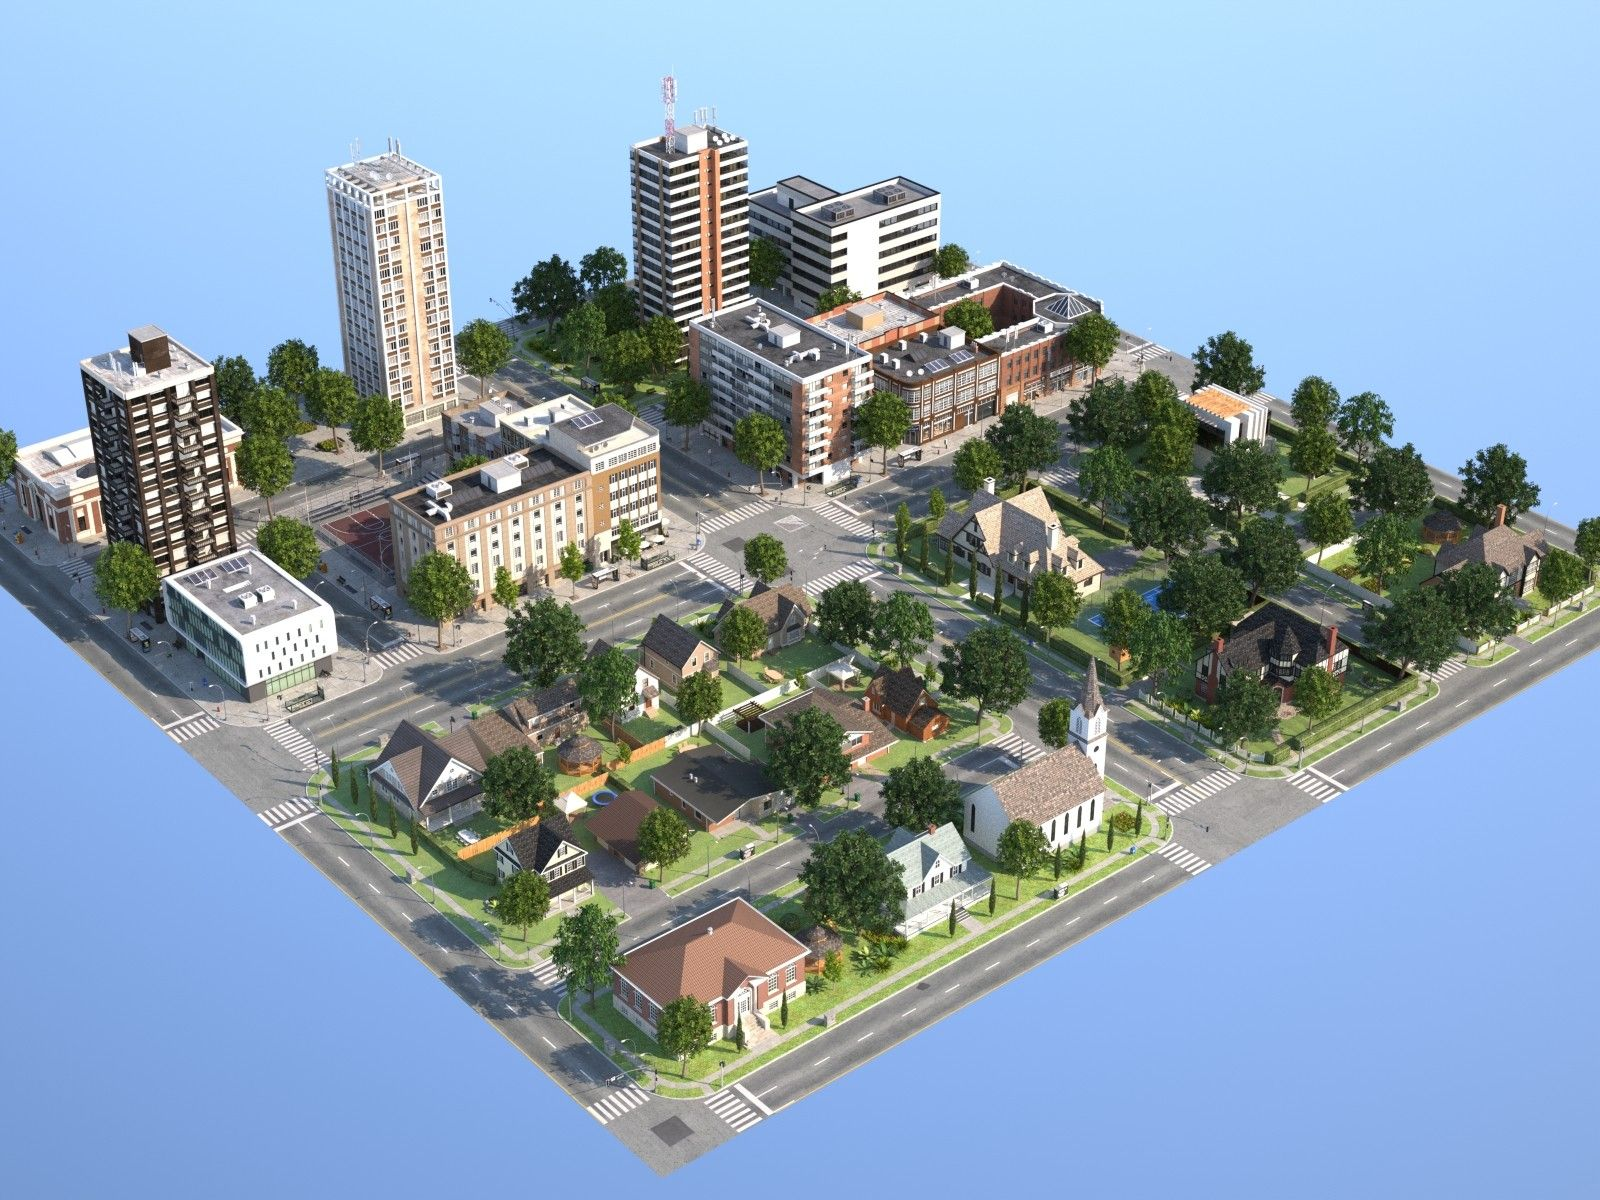 Town Suburb 3D Max 3D Model City layout, Minecraft